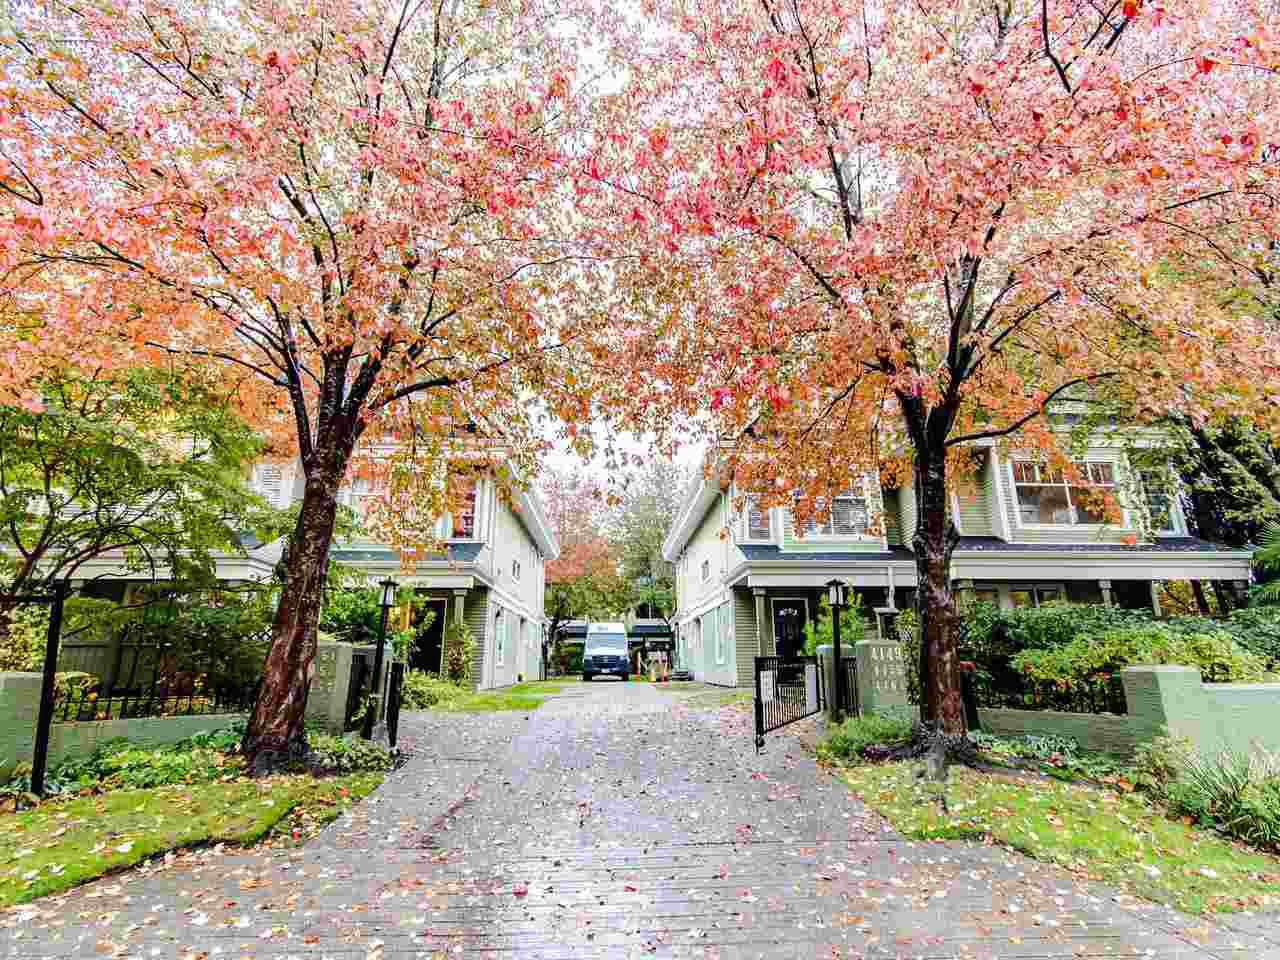 """Main Photo: 15 4157 SOPHIA Street in Vancouver: Main Townhouse for sale in """"Empress Court"""" (Vancouver East)  : MLS®# R2414907"""